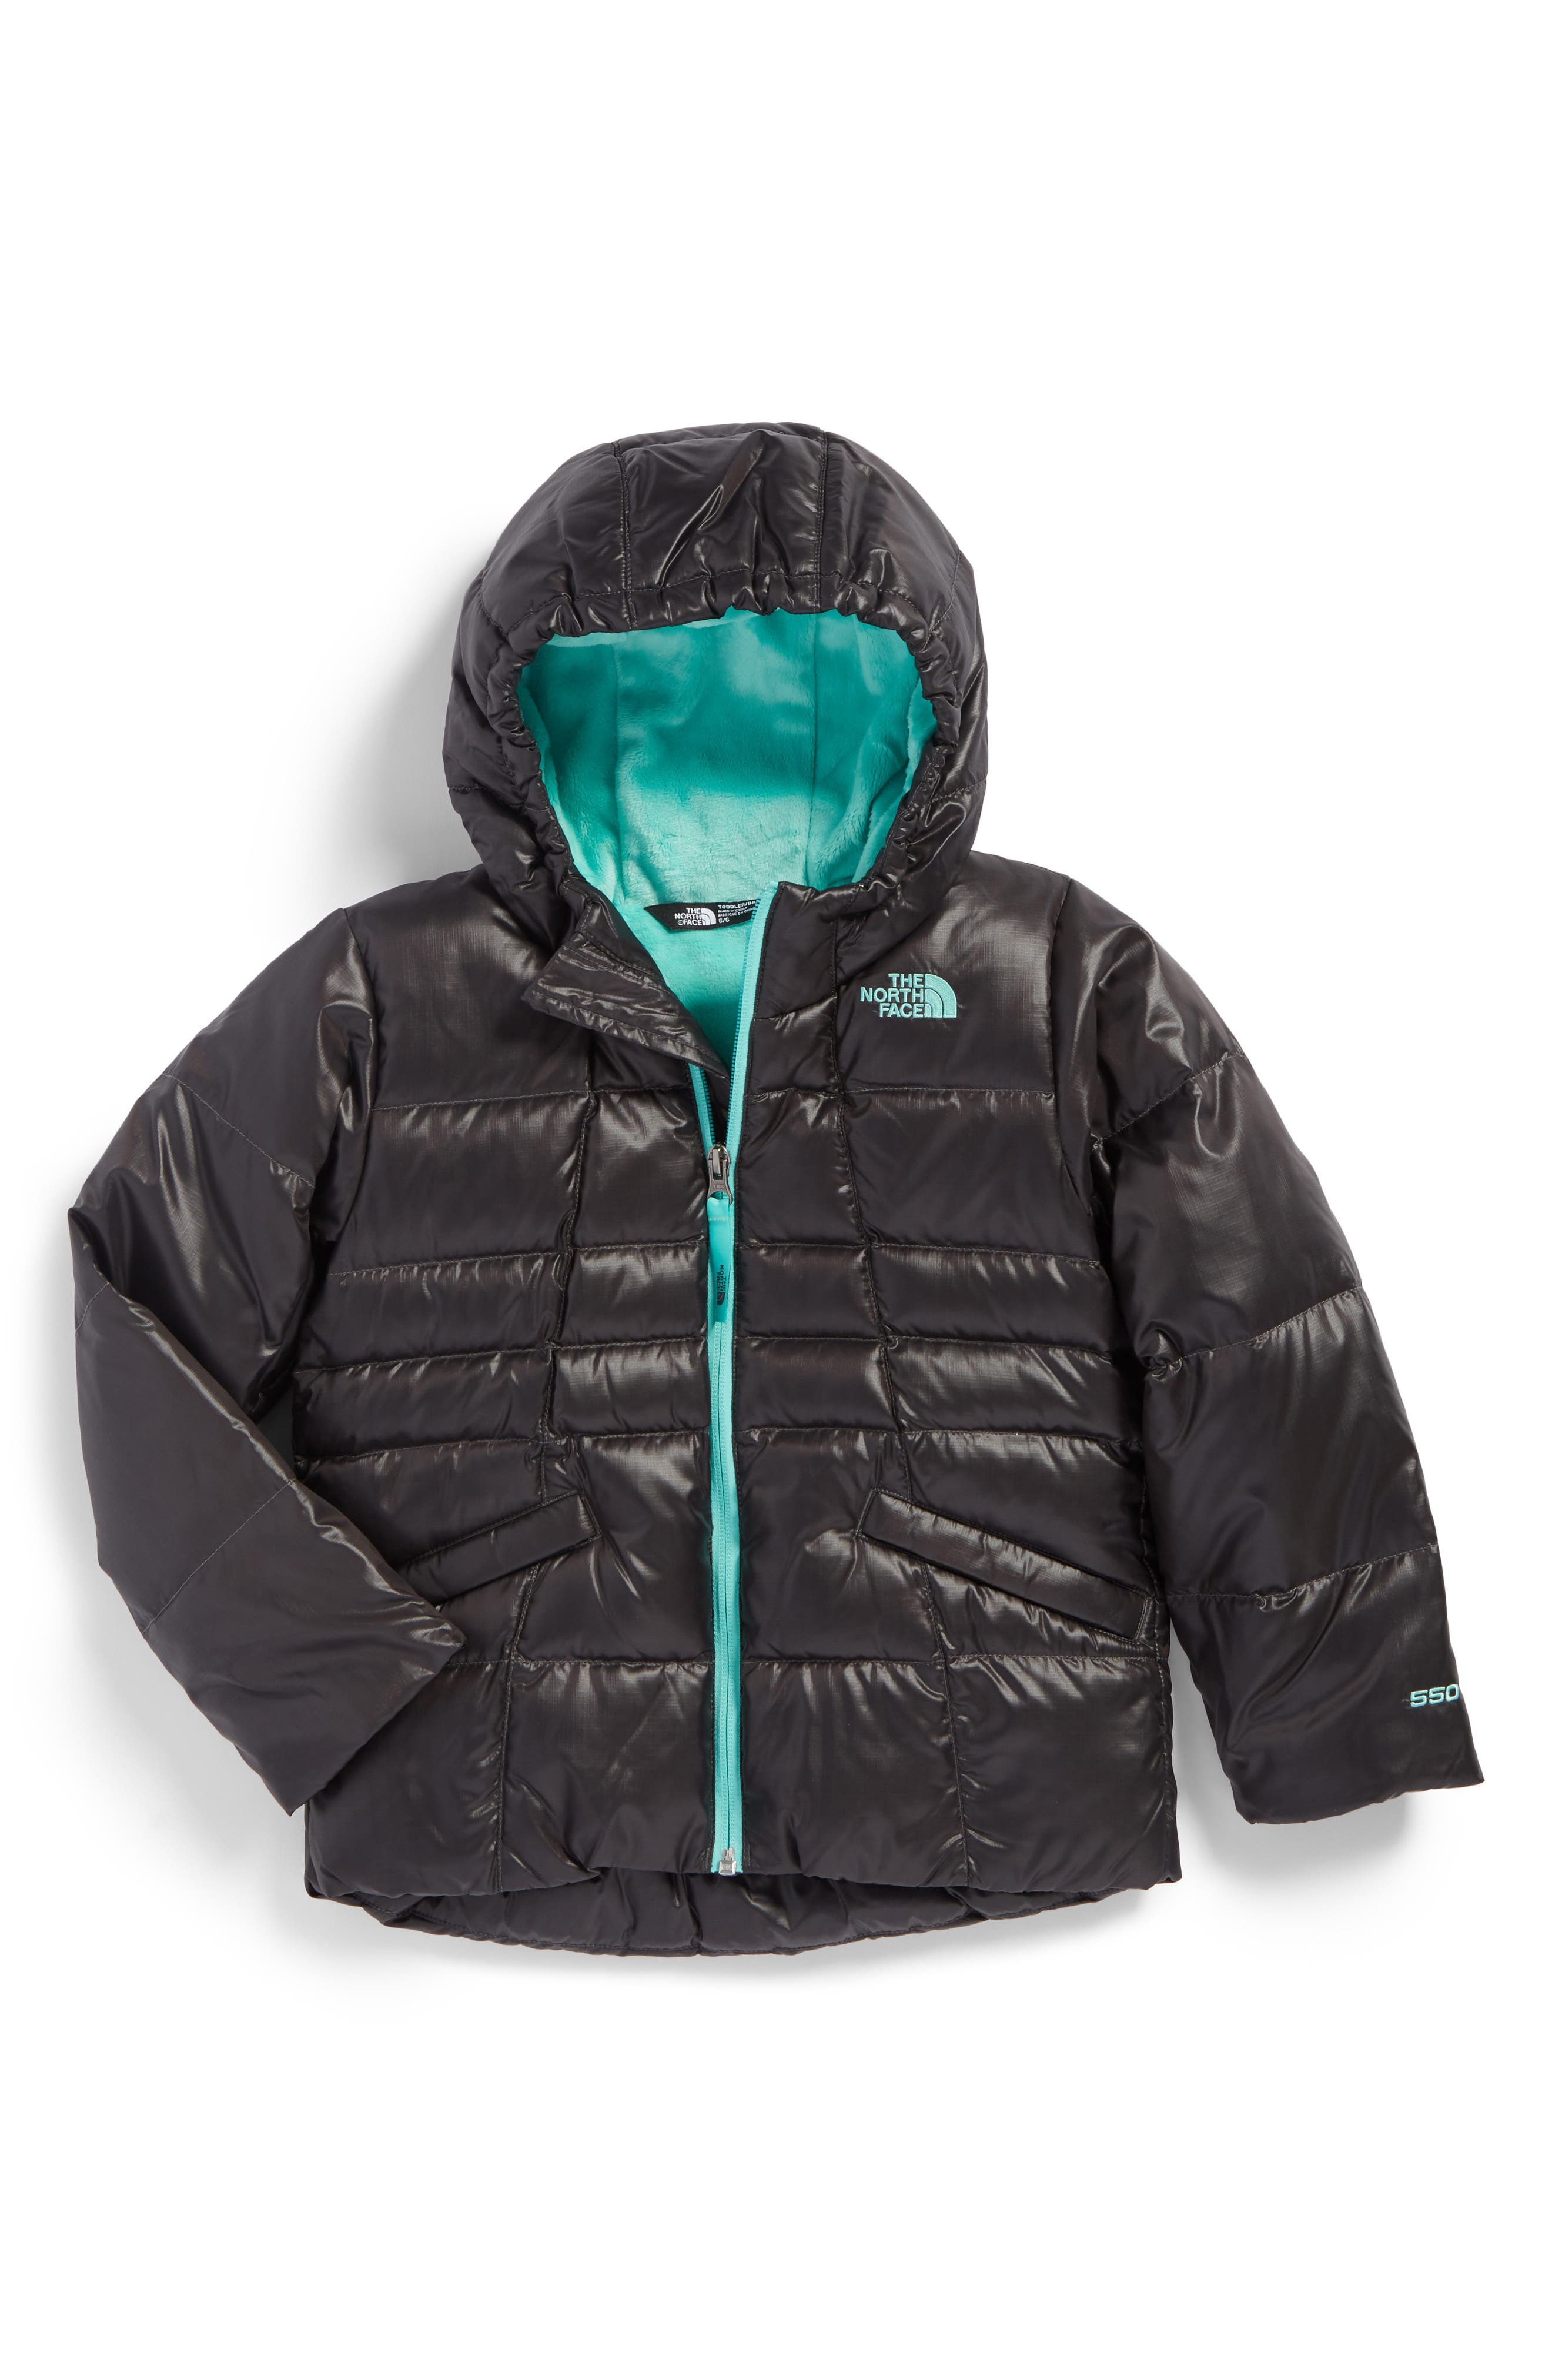 Main Image - The North Face Moondoggy 2.0 Water Repellent Jacket (Toddler Girls)